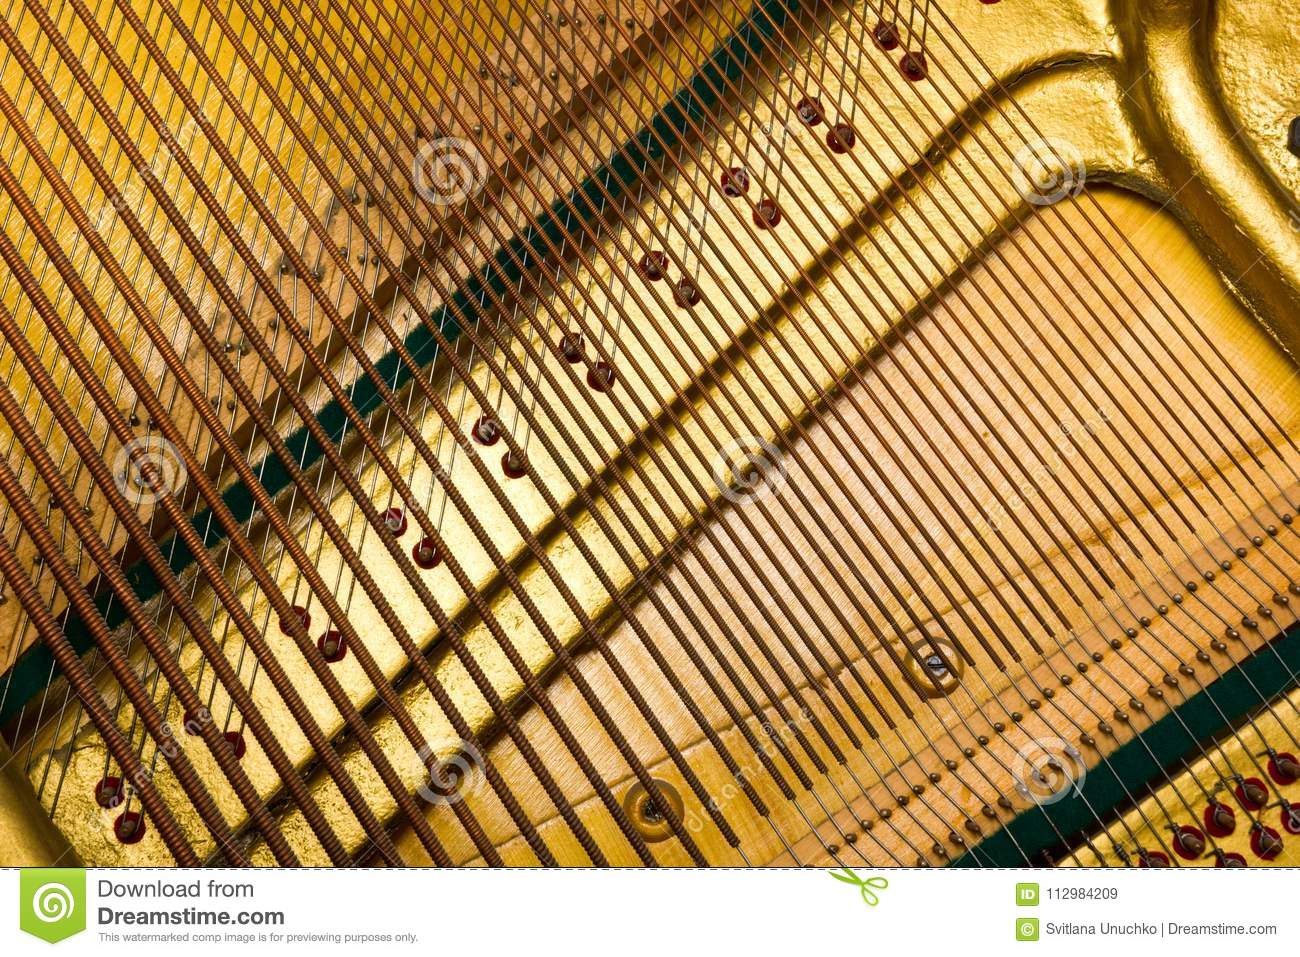 Internal arrangement of pianos, Theme of musical instruments. Background.